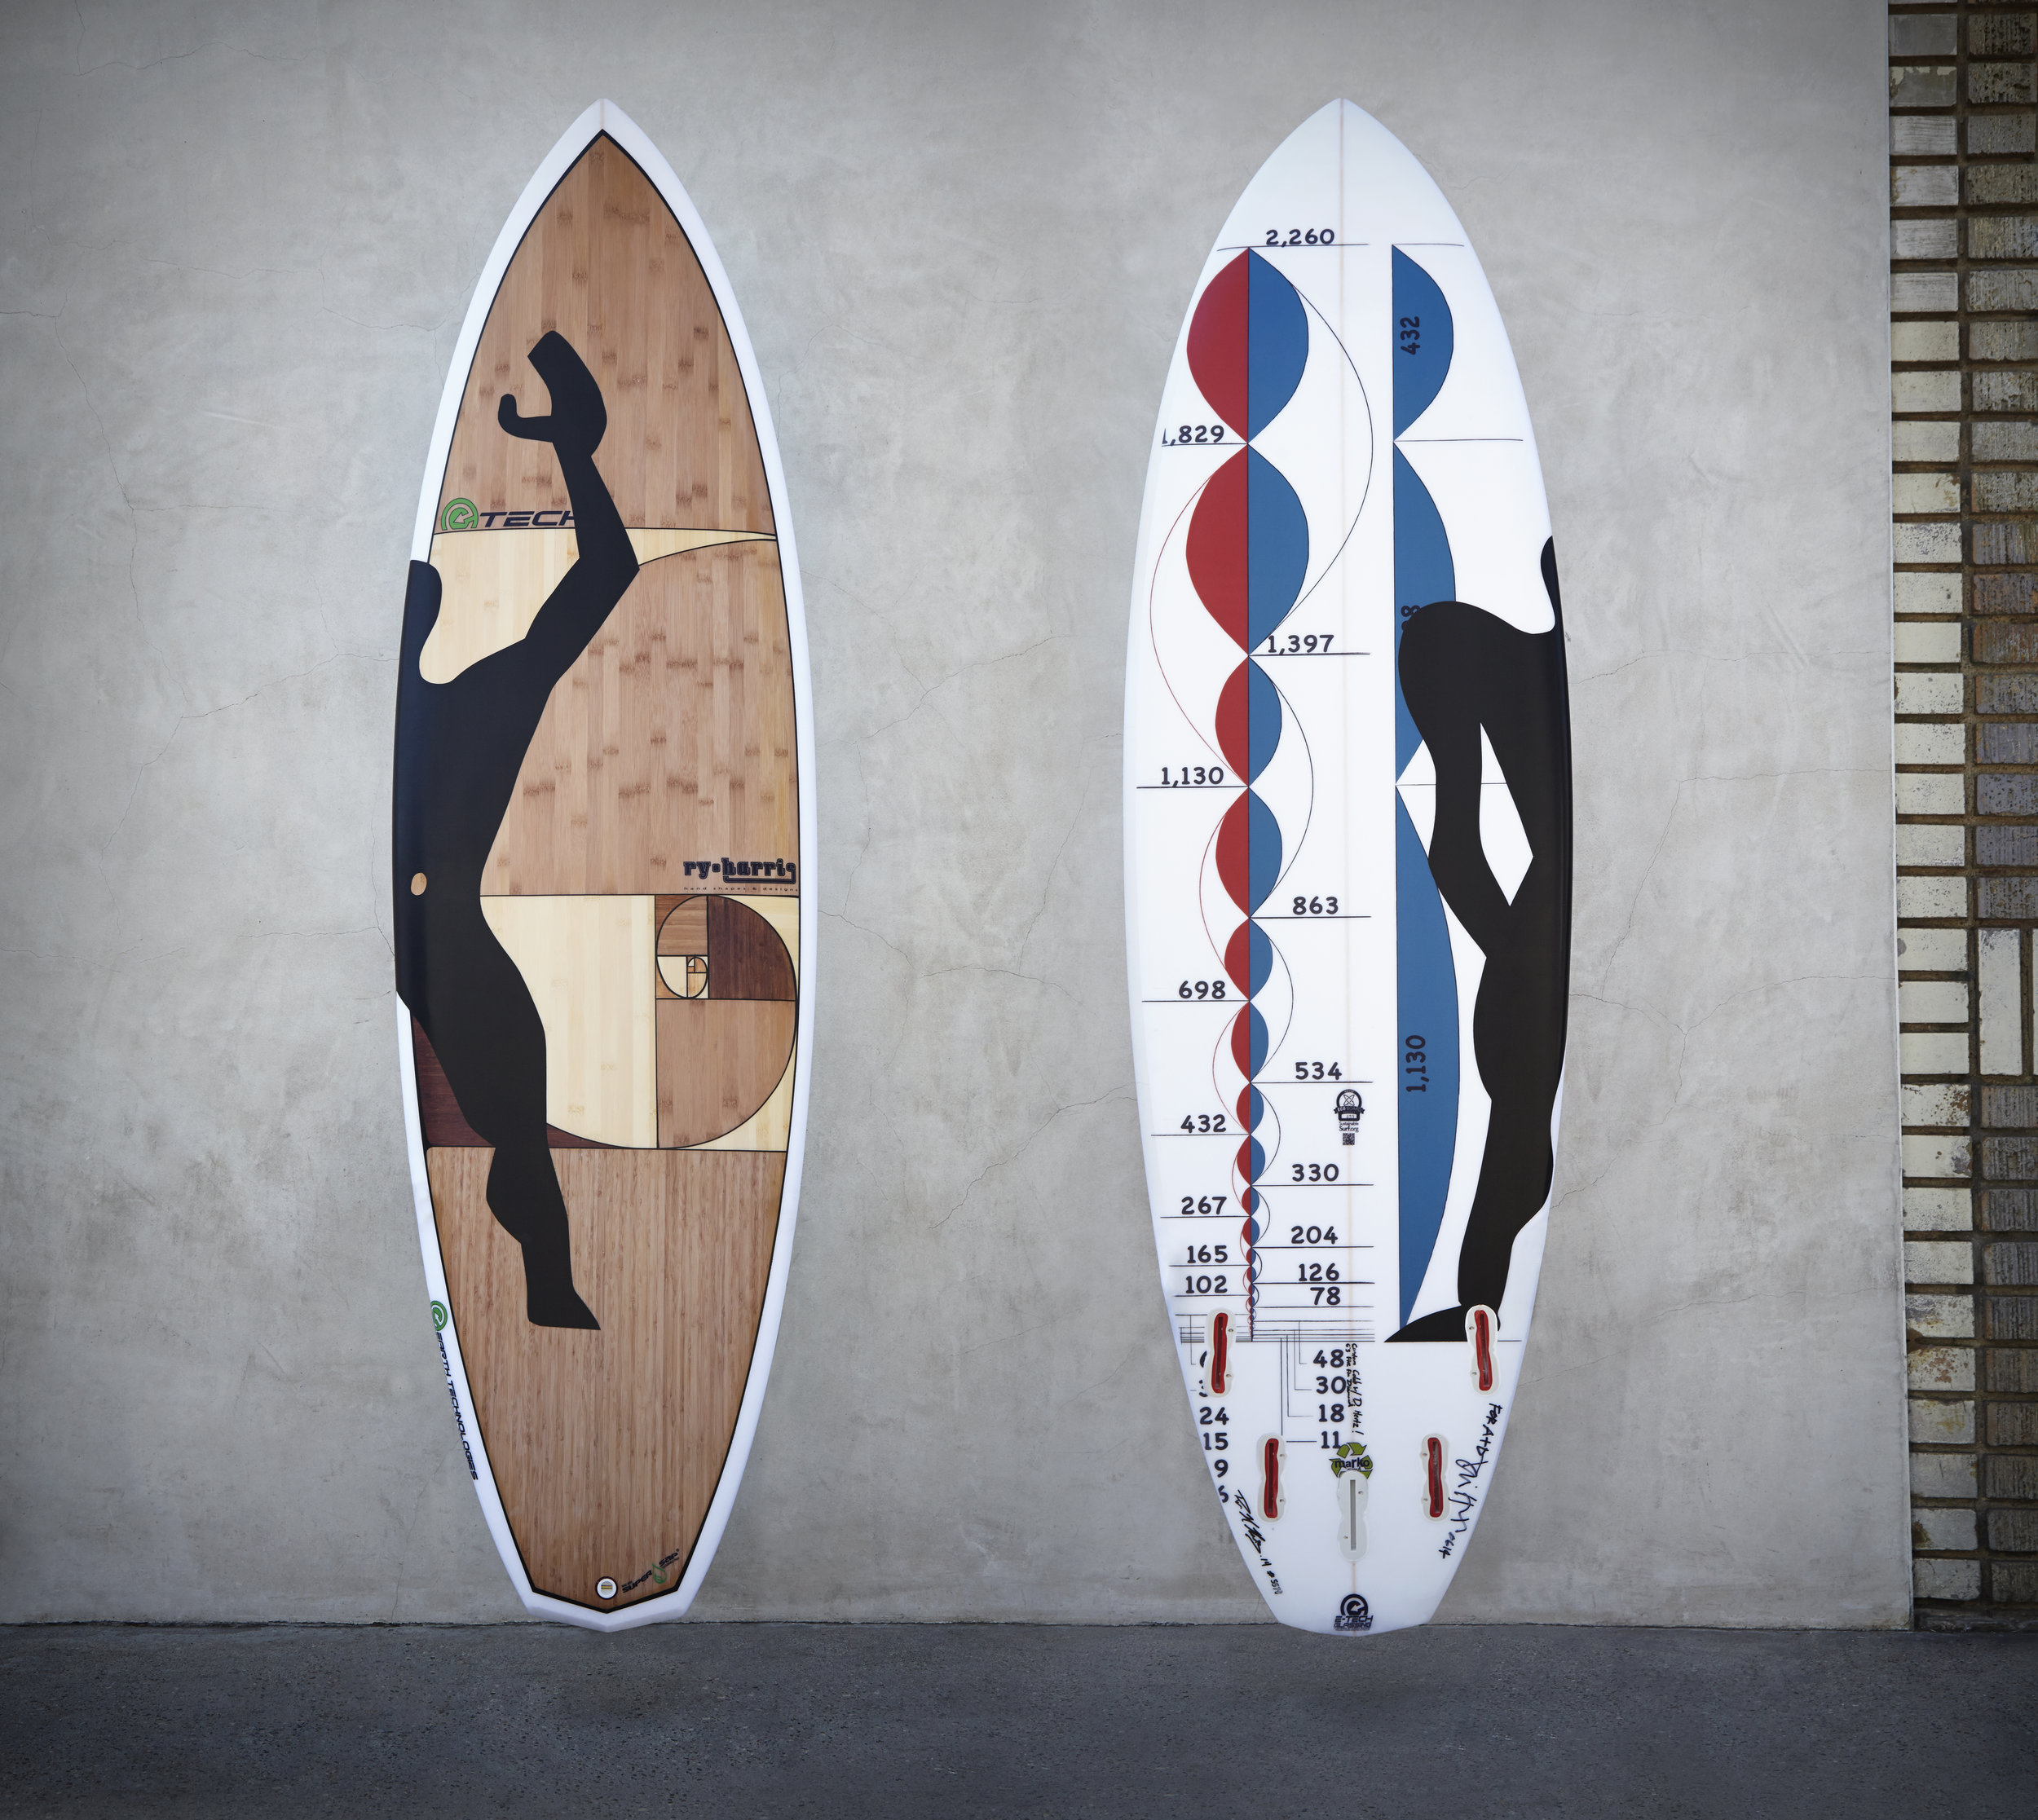 S.E.A.-Studio-Environmental-Architecture-David-Hertz-FAIA-A+D-Museum-Surfboard-Venice-Beach-California-sustainable-regenerative-restorative-green-design-Le-Corbusier-Modular-Vitruvian-Man-graphic-shortboard-recycled-bamboo-Super-Sap-biobased-custom-8.jpg